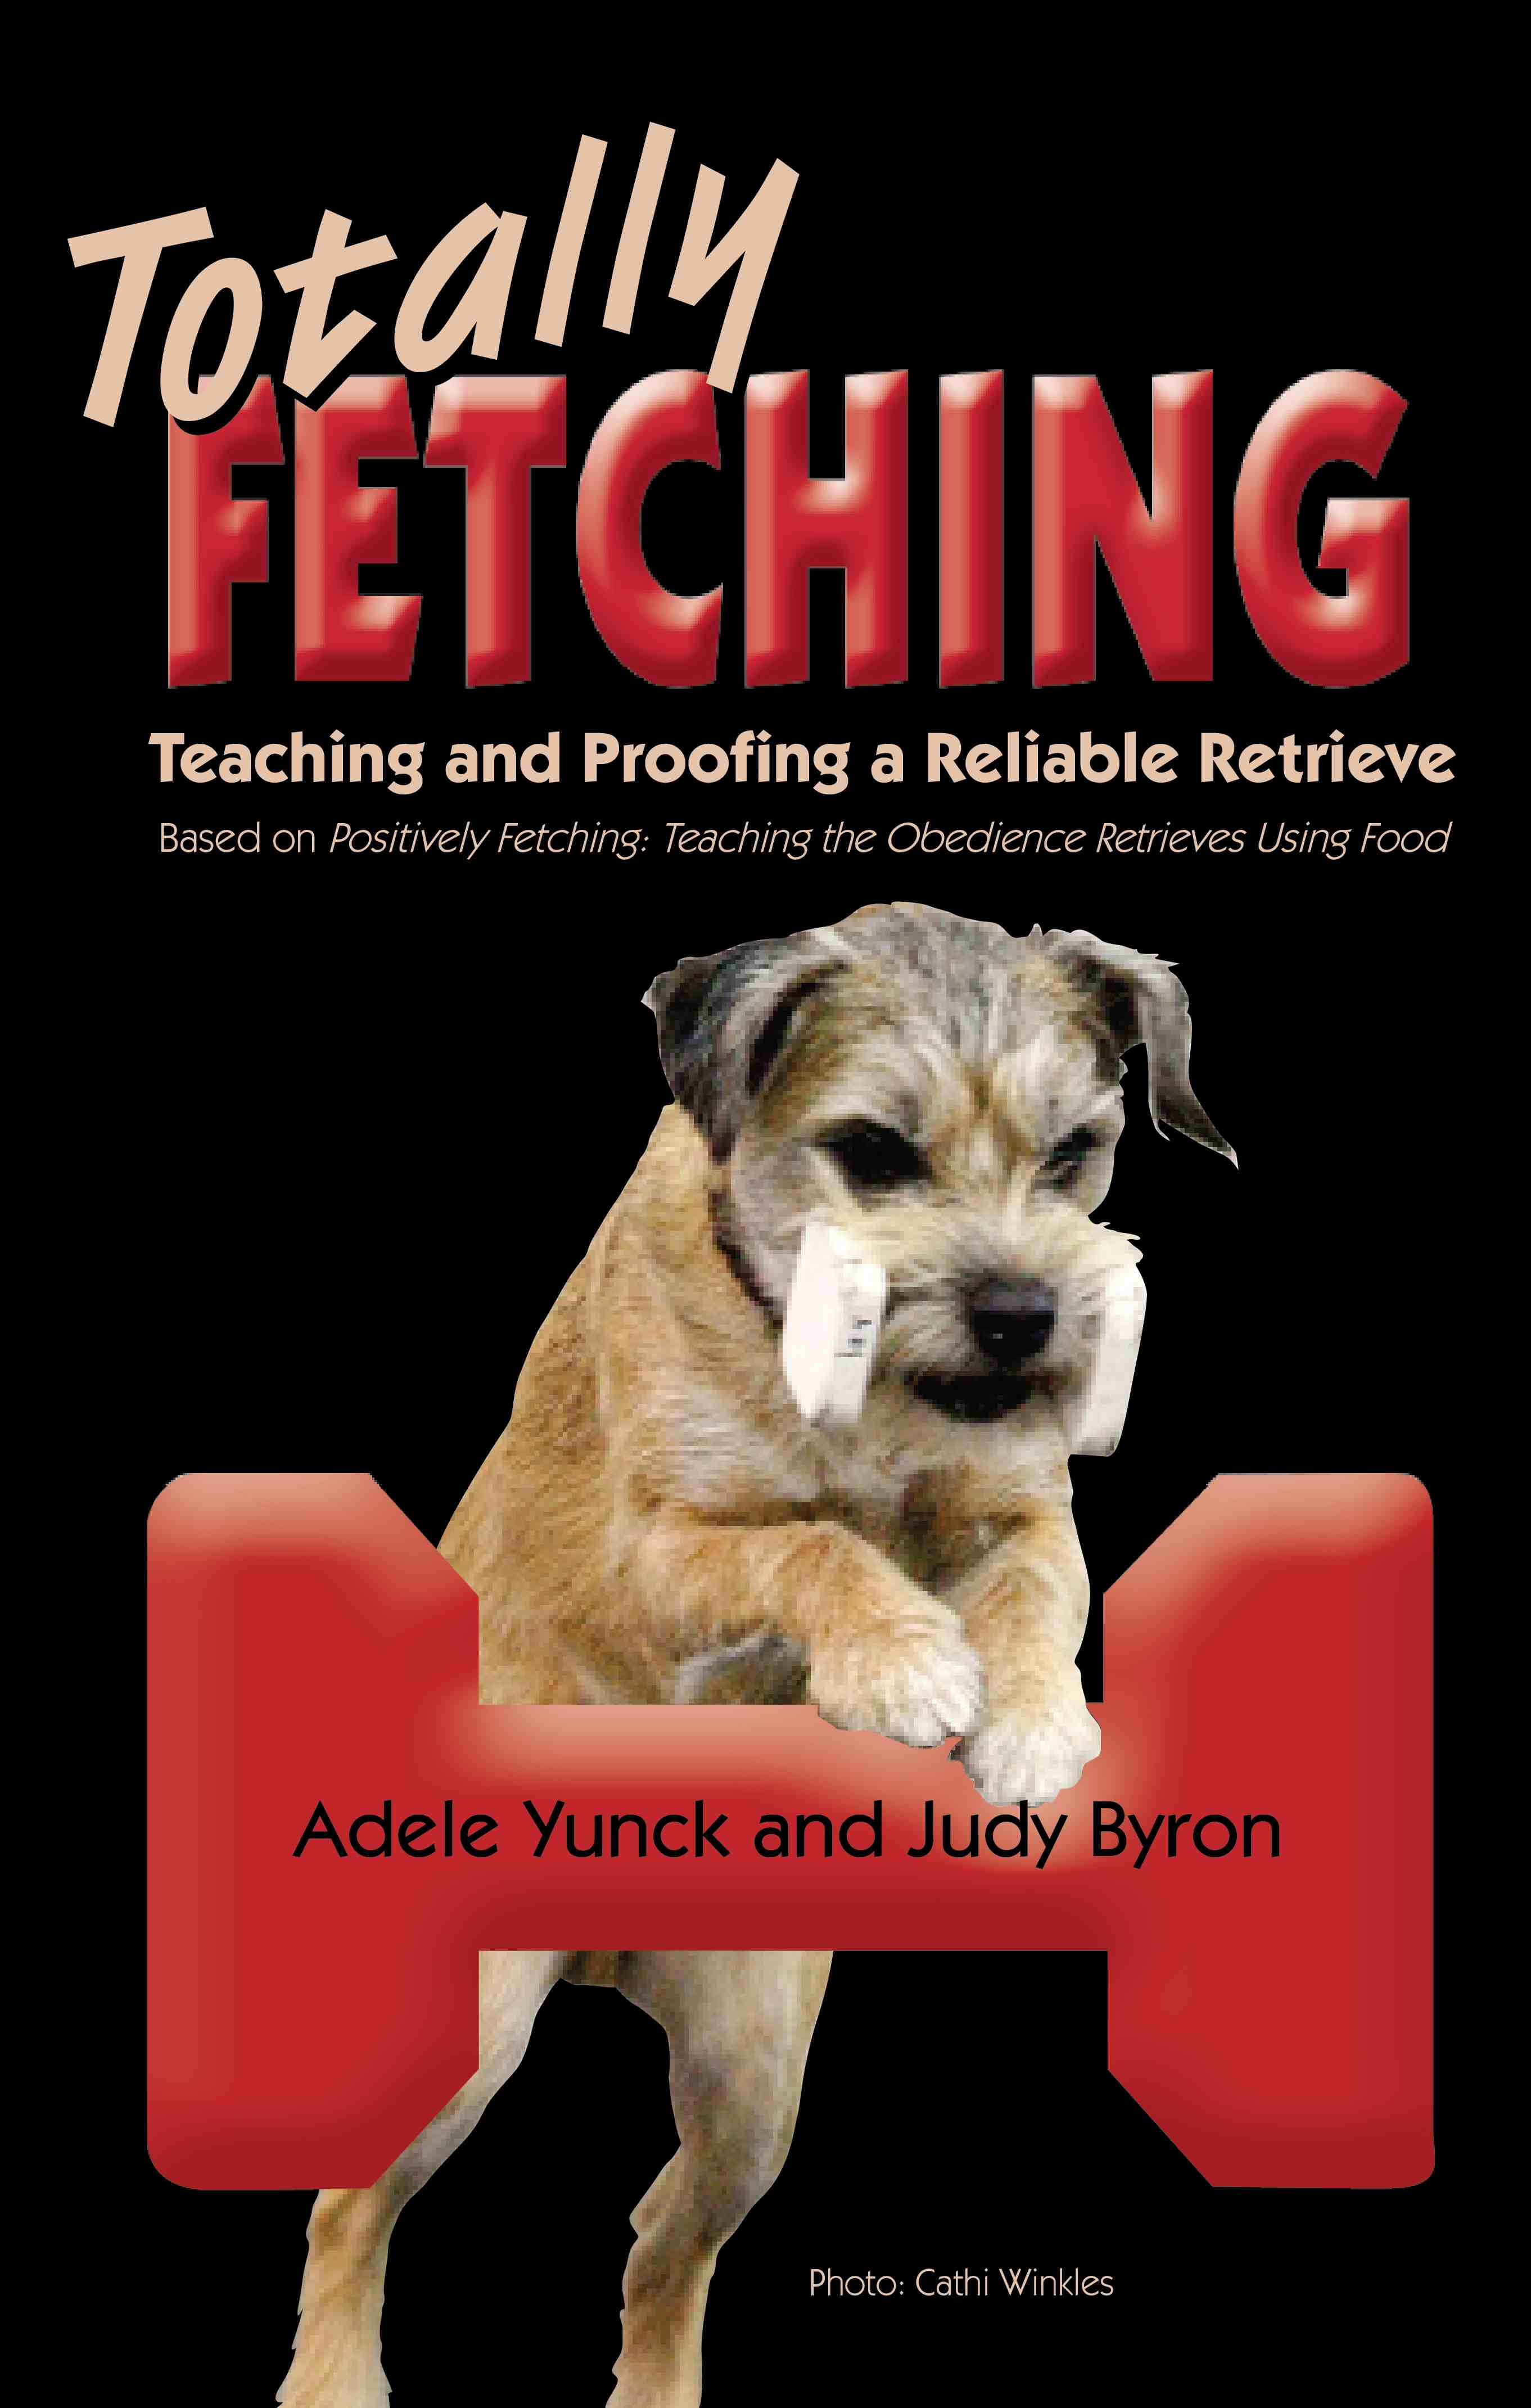 Teaching and Proofing a Reliable Retrieve